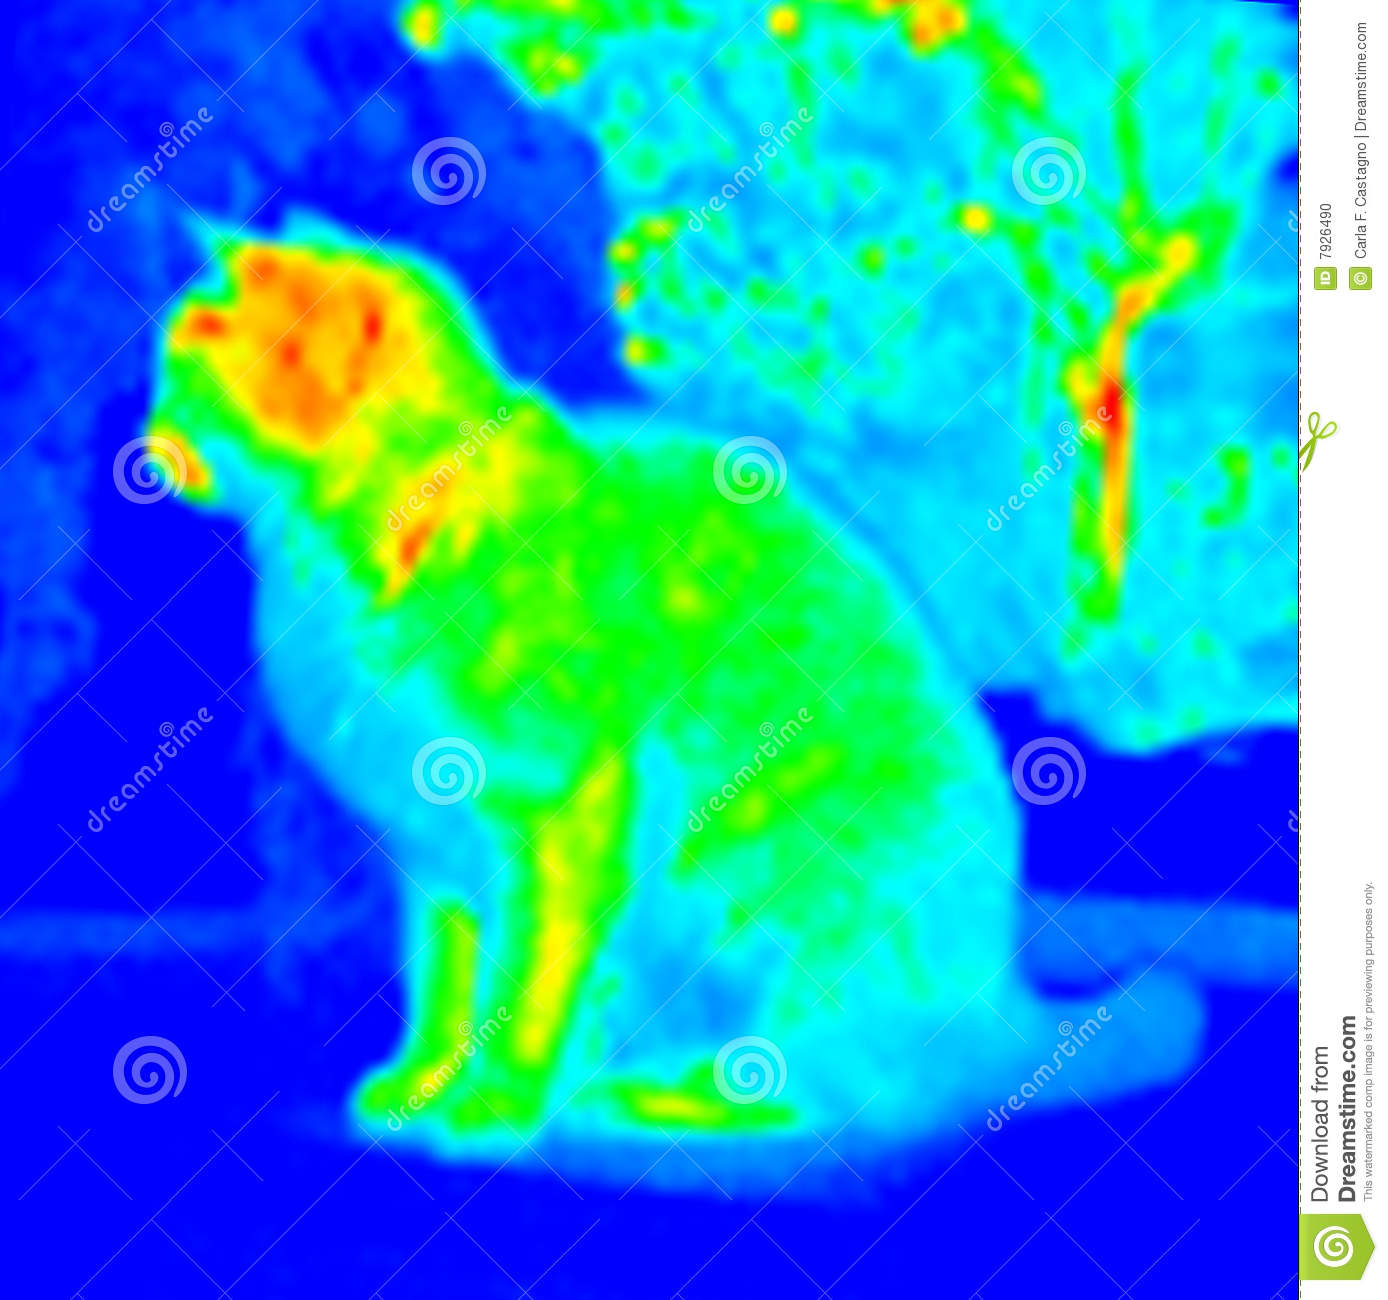 Infrared Cat Stock Photos, Images, & Pictures.